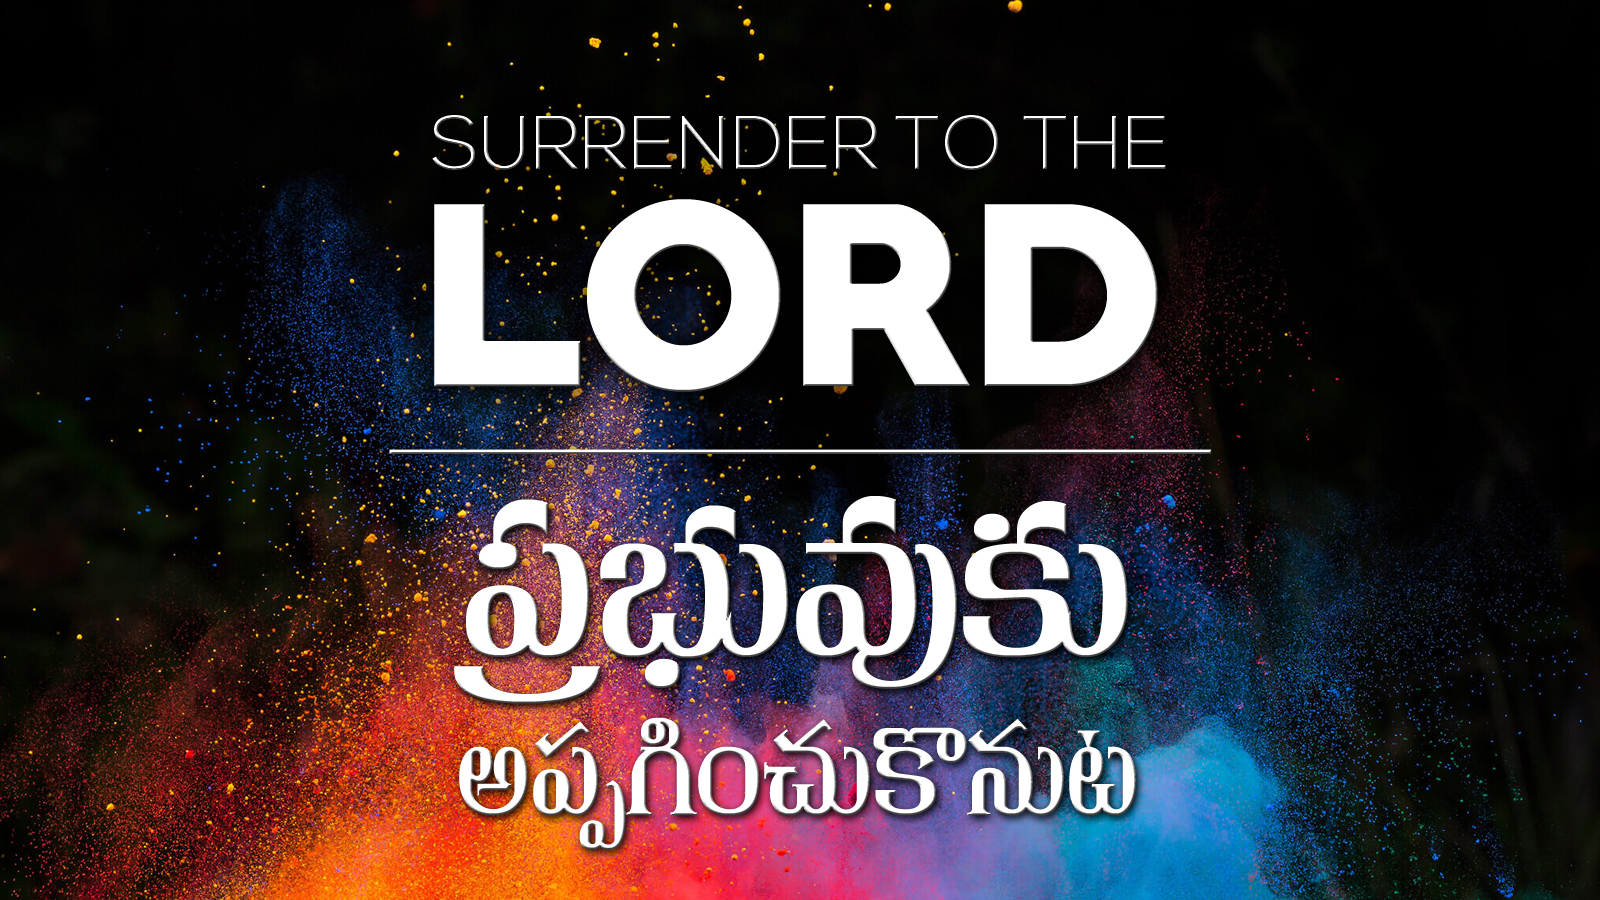 Surrender to the Lord (A325)